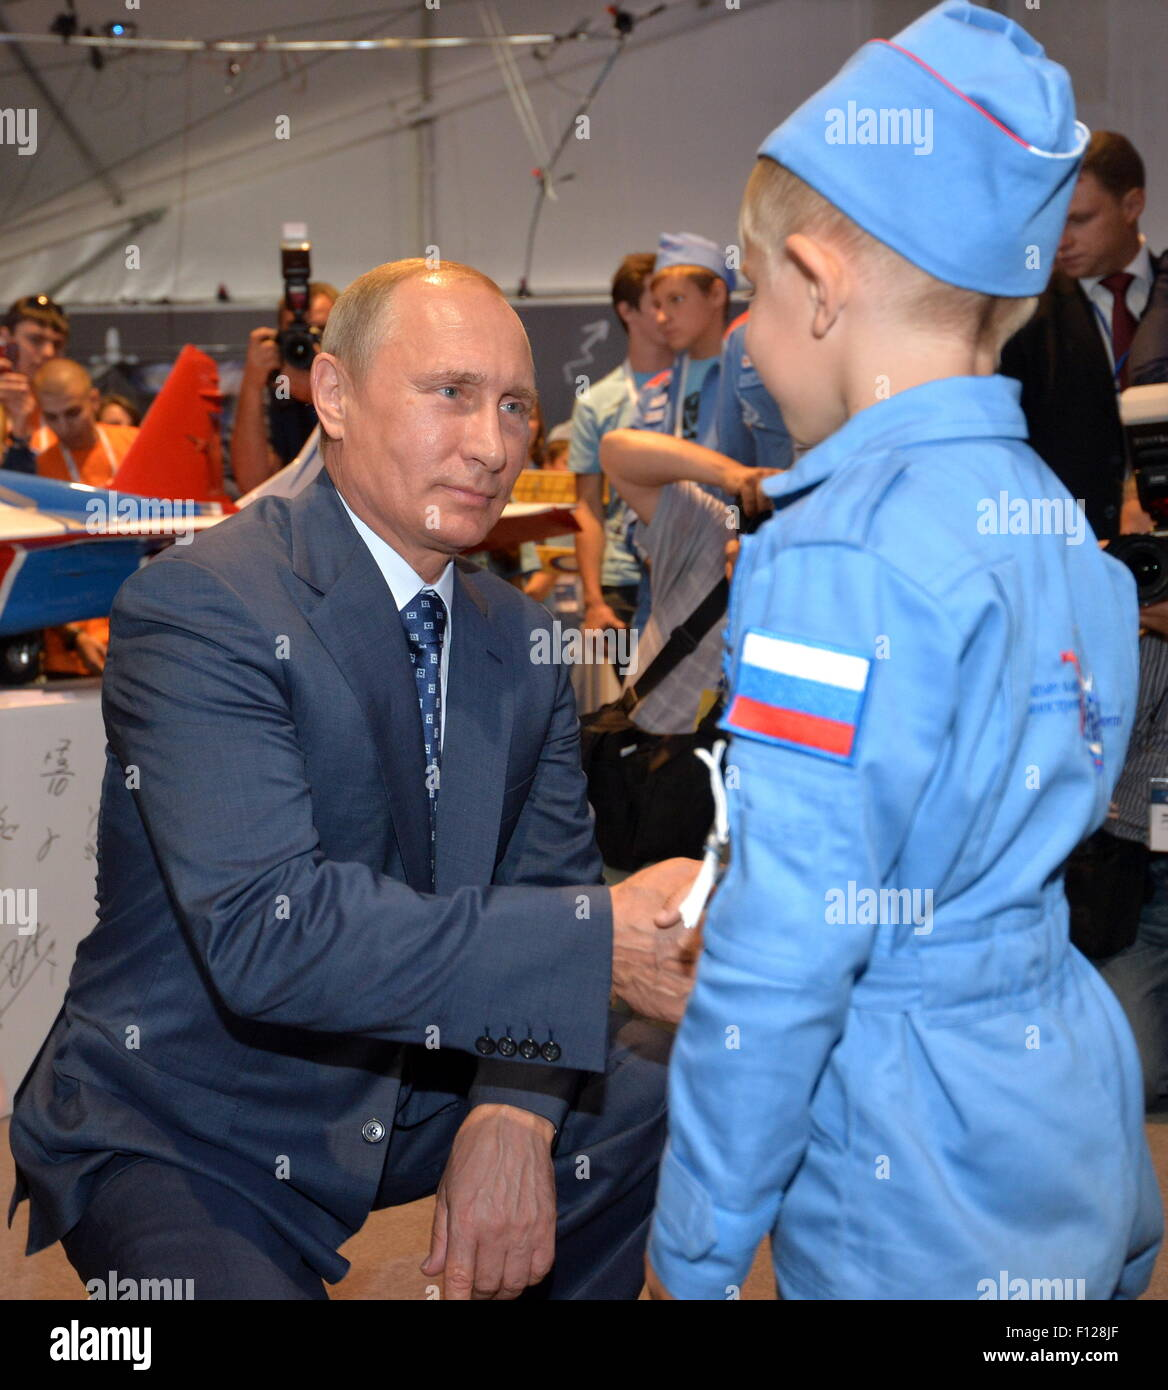 Moscow Region, Russia. 25th Aug, 2015. Russia's President Vladimir Putin talks to a boy as he visits the pavilion - Stock Image